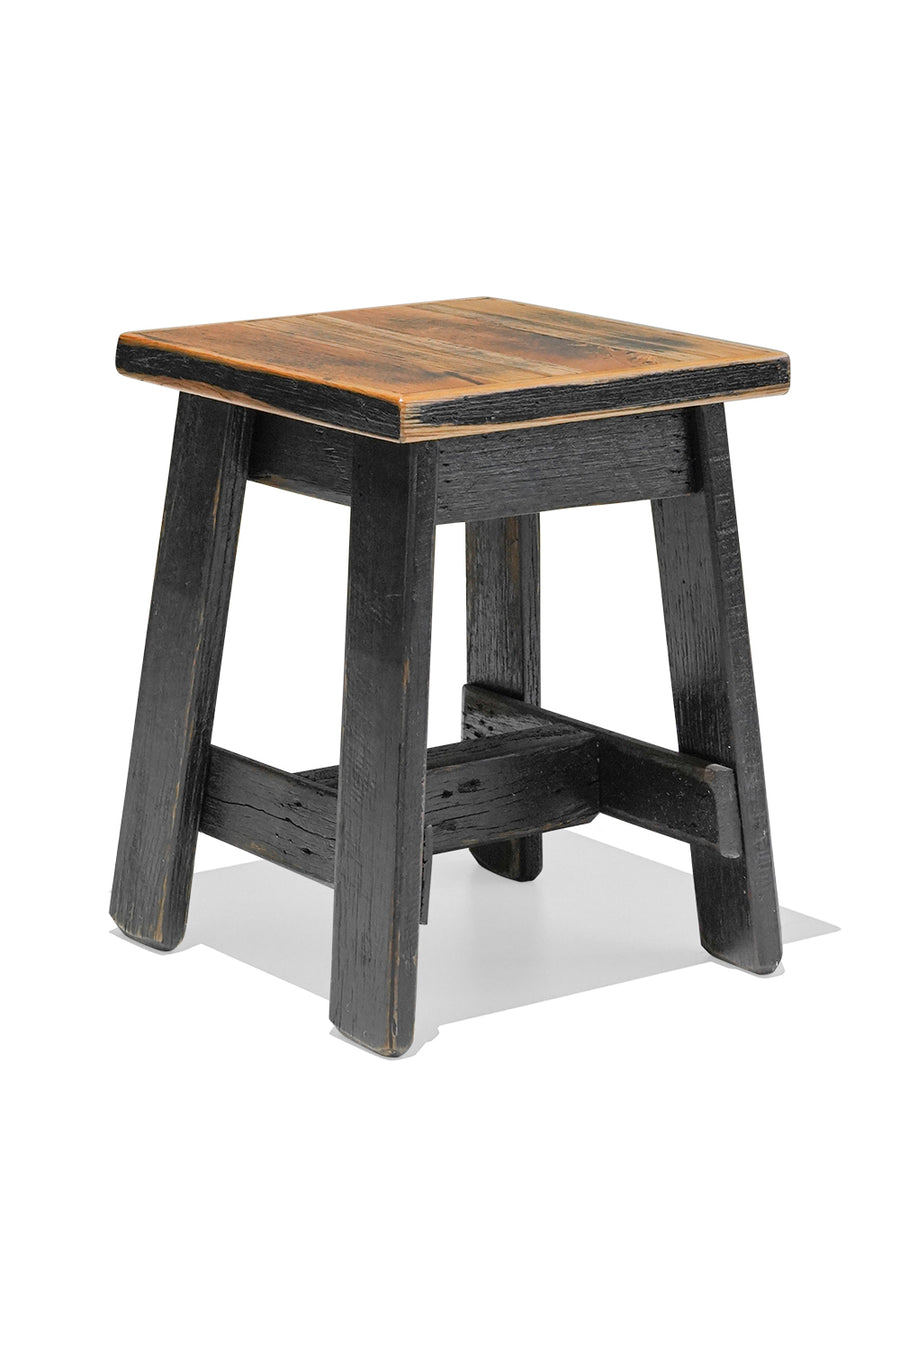 HARDWOOD stool - Black Wash Finish